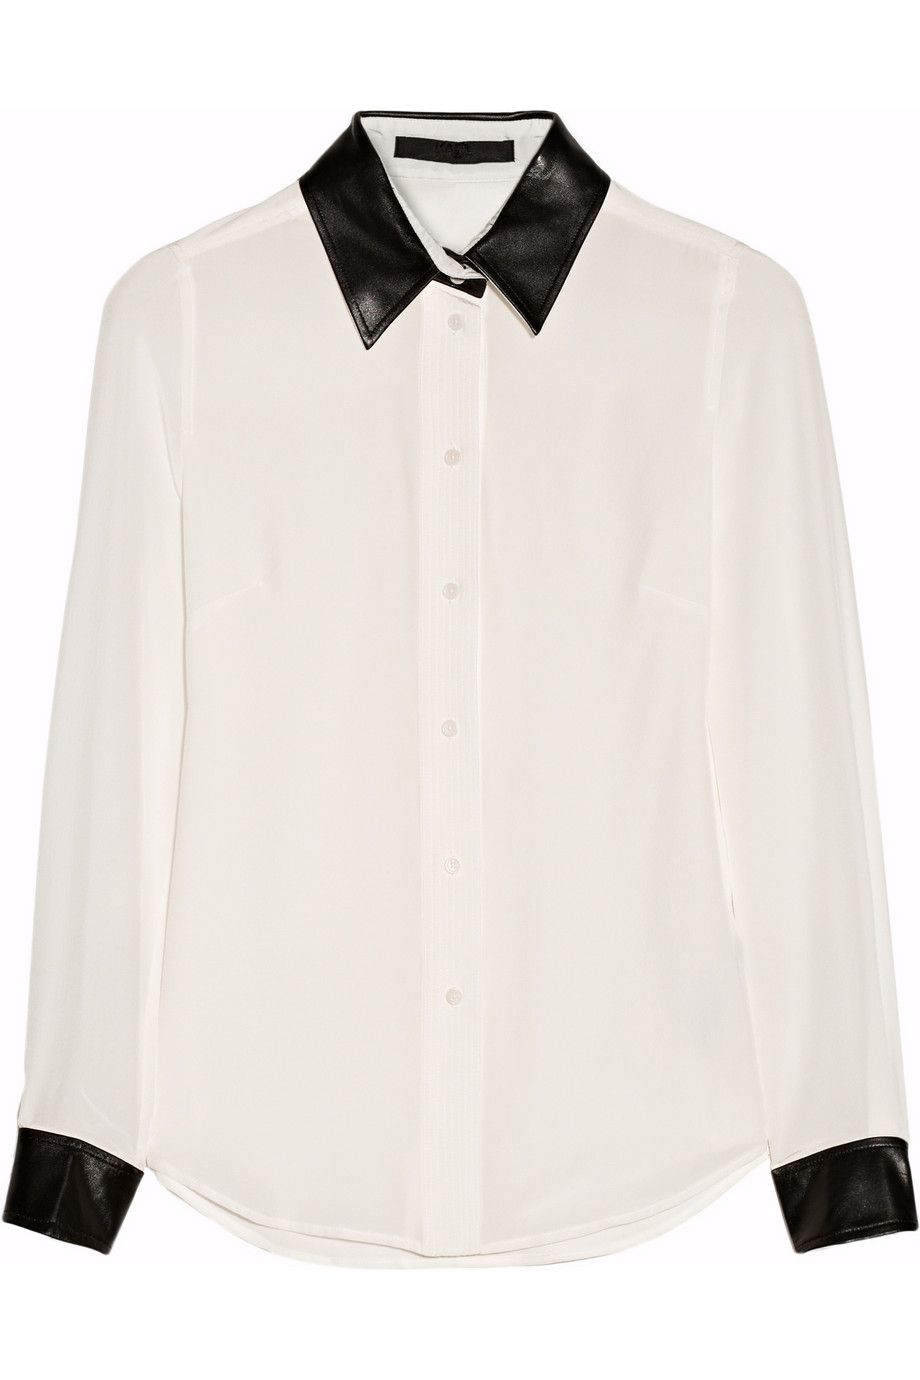 498f2556b Karl Lagerfeld Vive Leather-trimmed Silk Shirt in White - Lyst